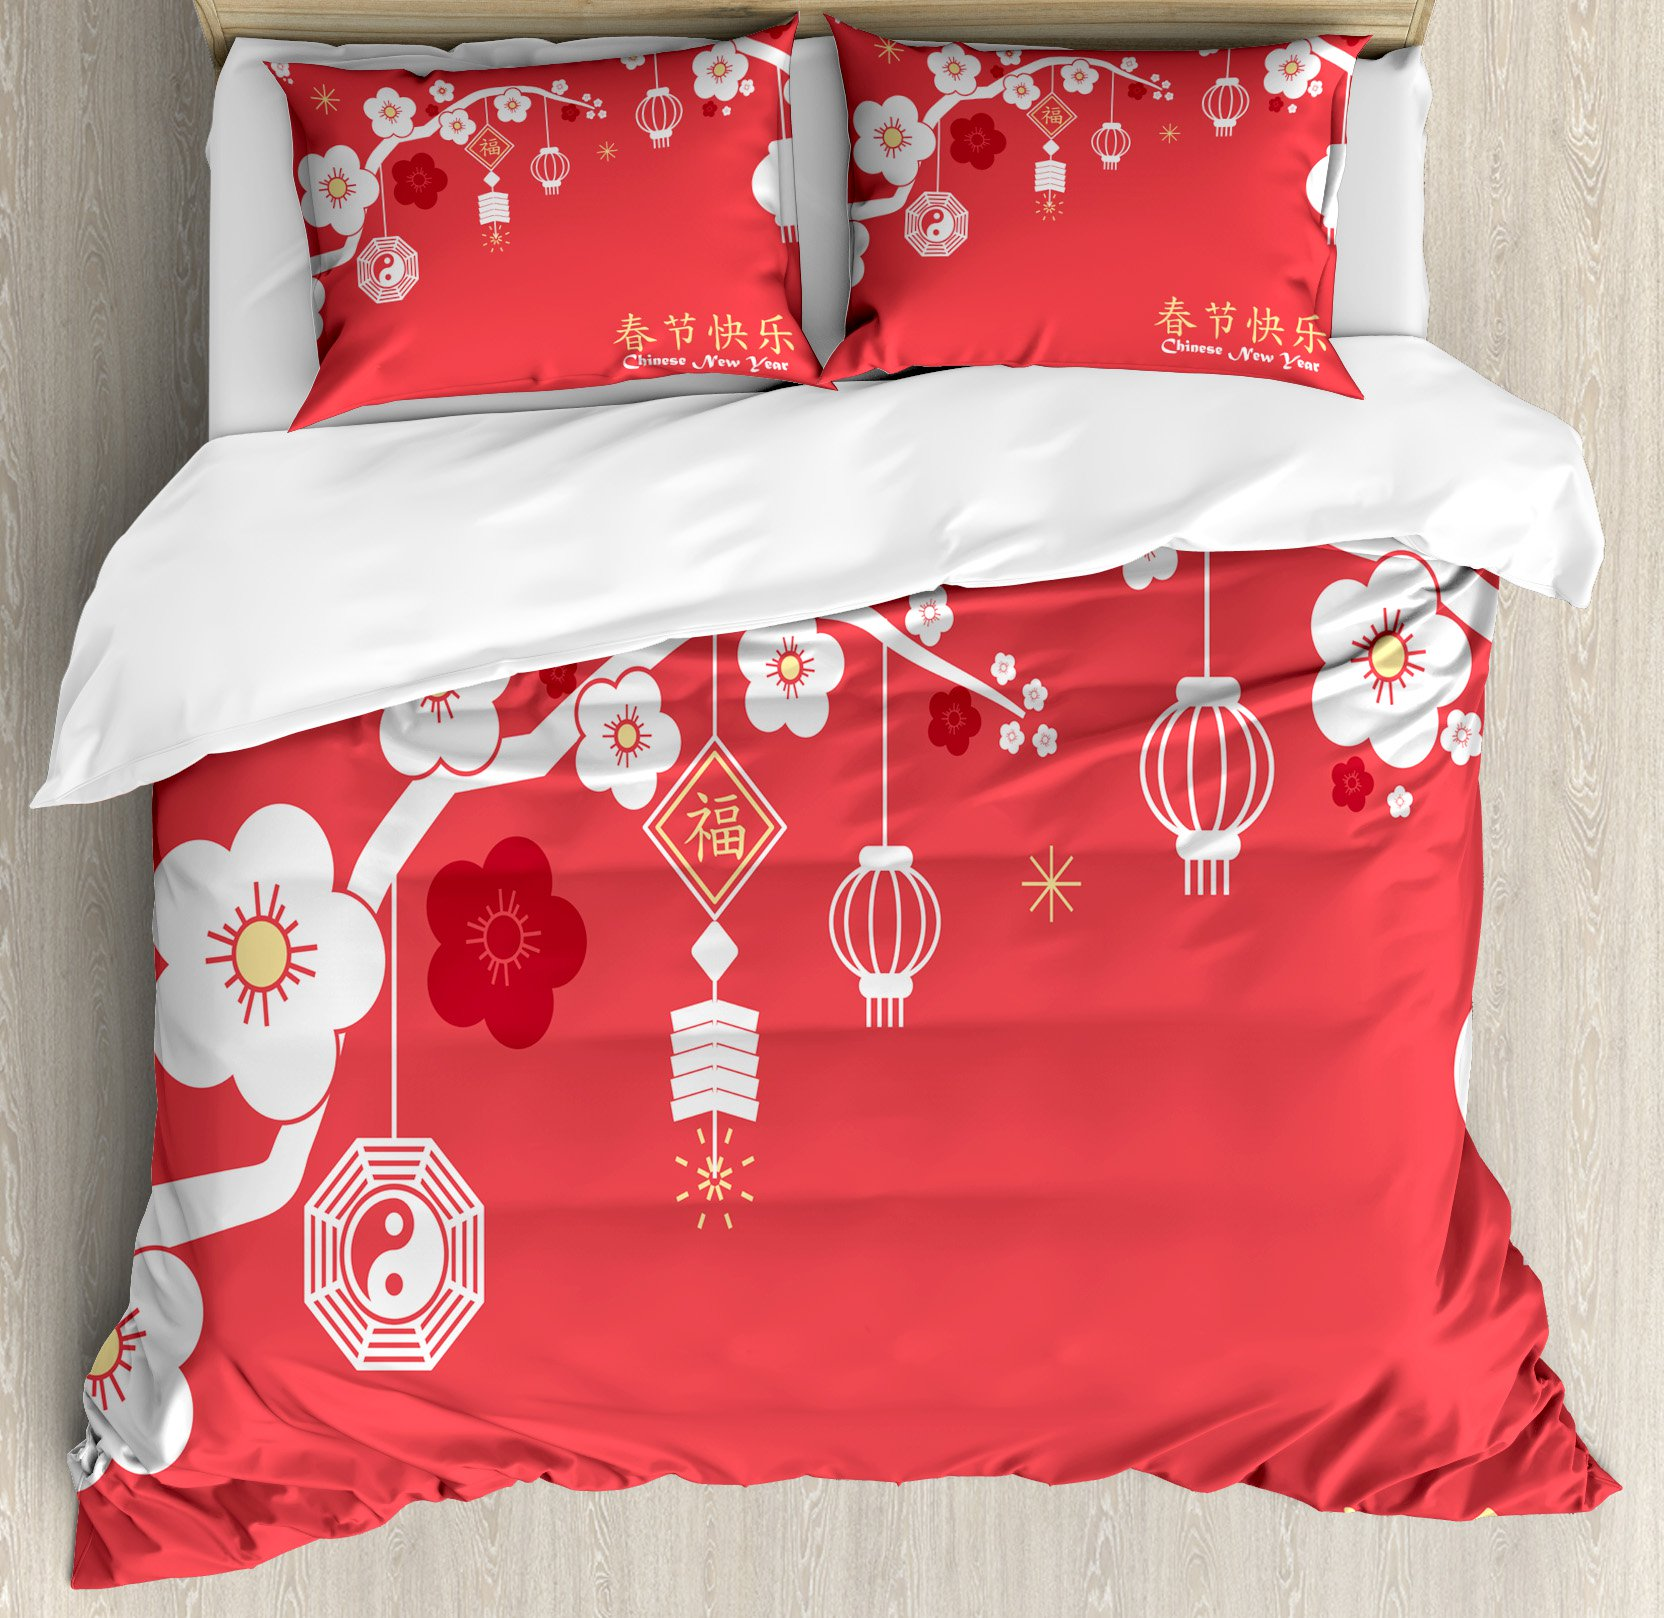 Marvelous Chinese New Year King Size Duvet Cover Set, Various Lanterns Hanging From  Blossoming Sakura Branches